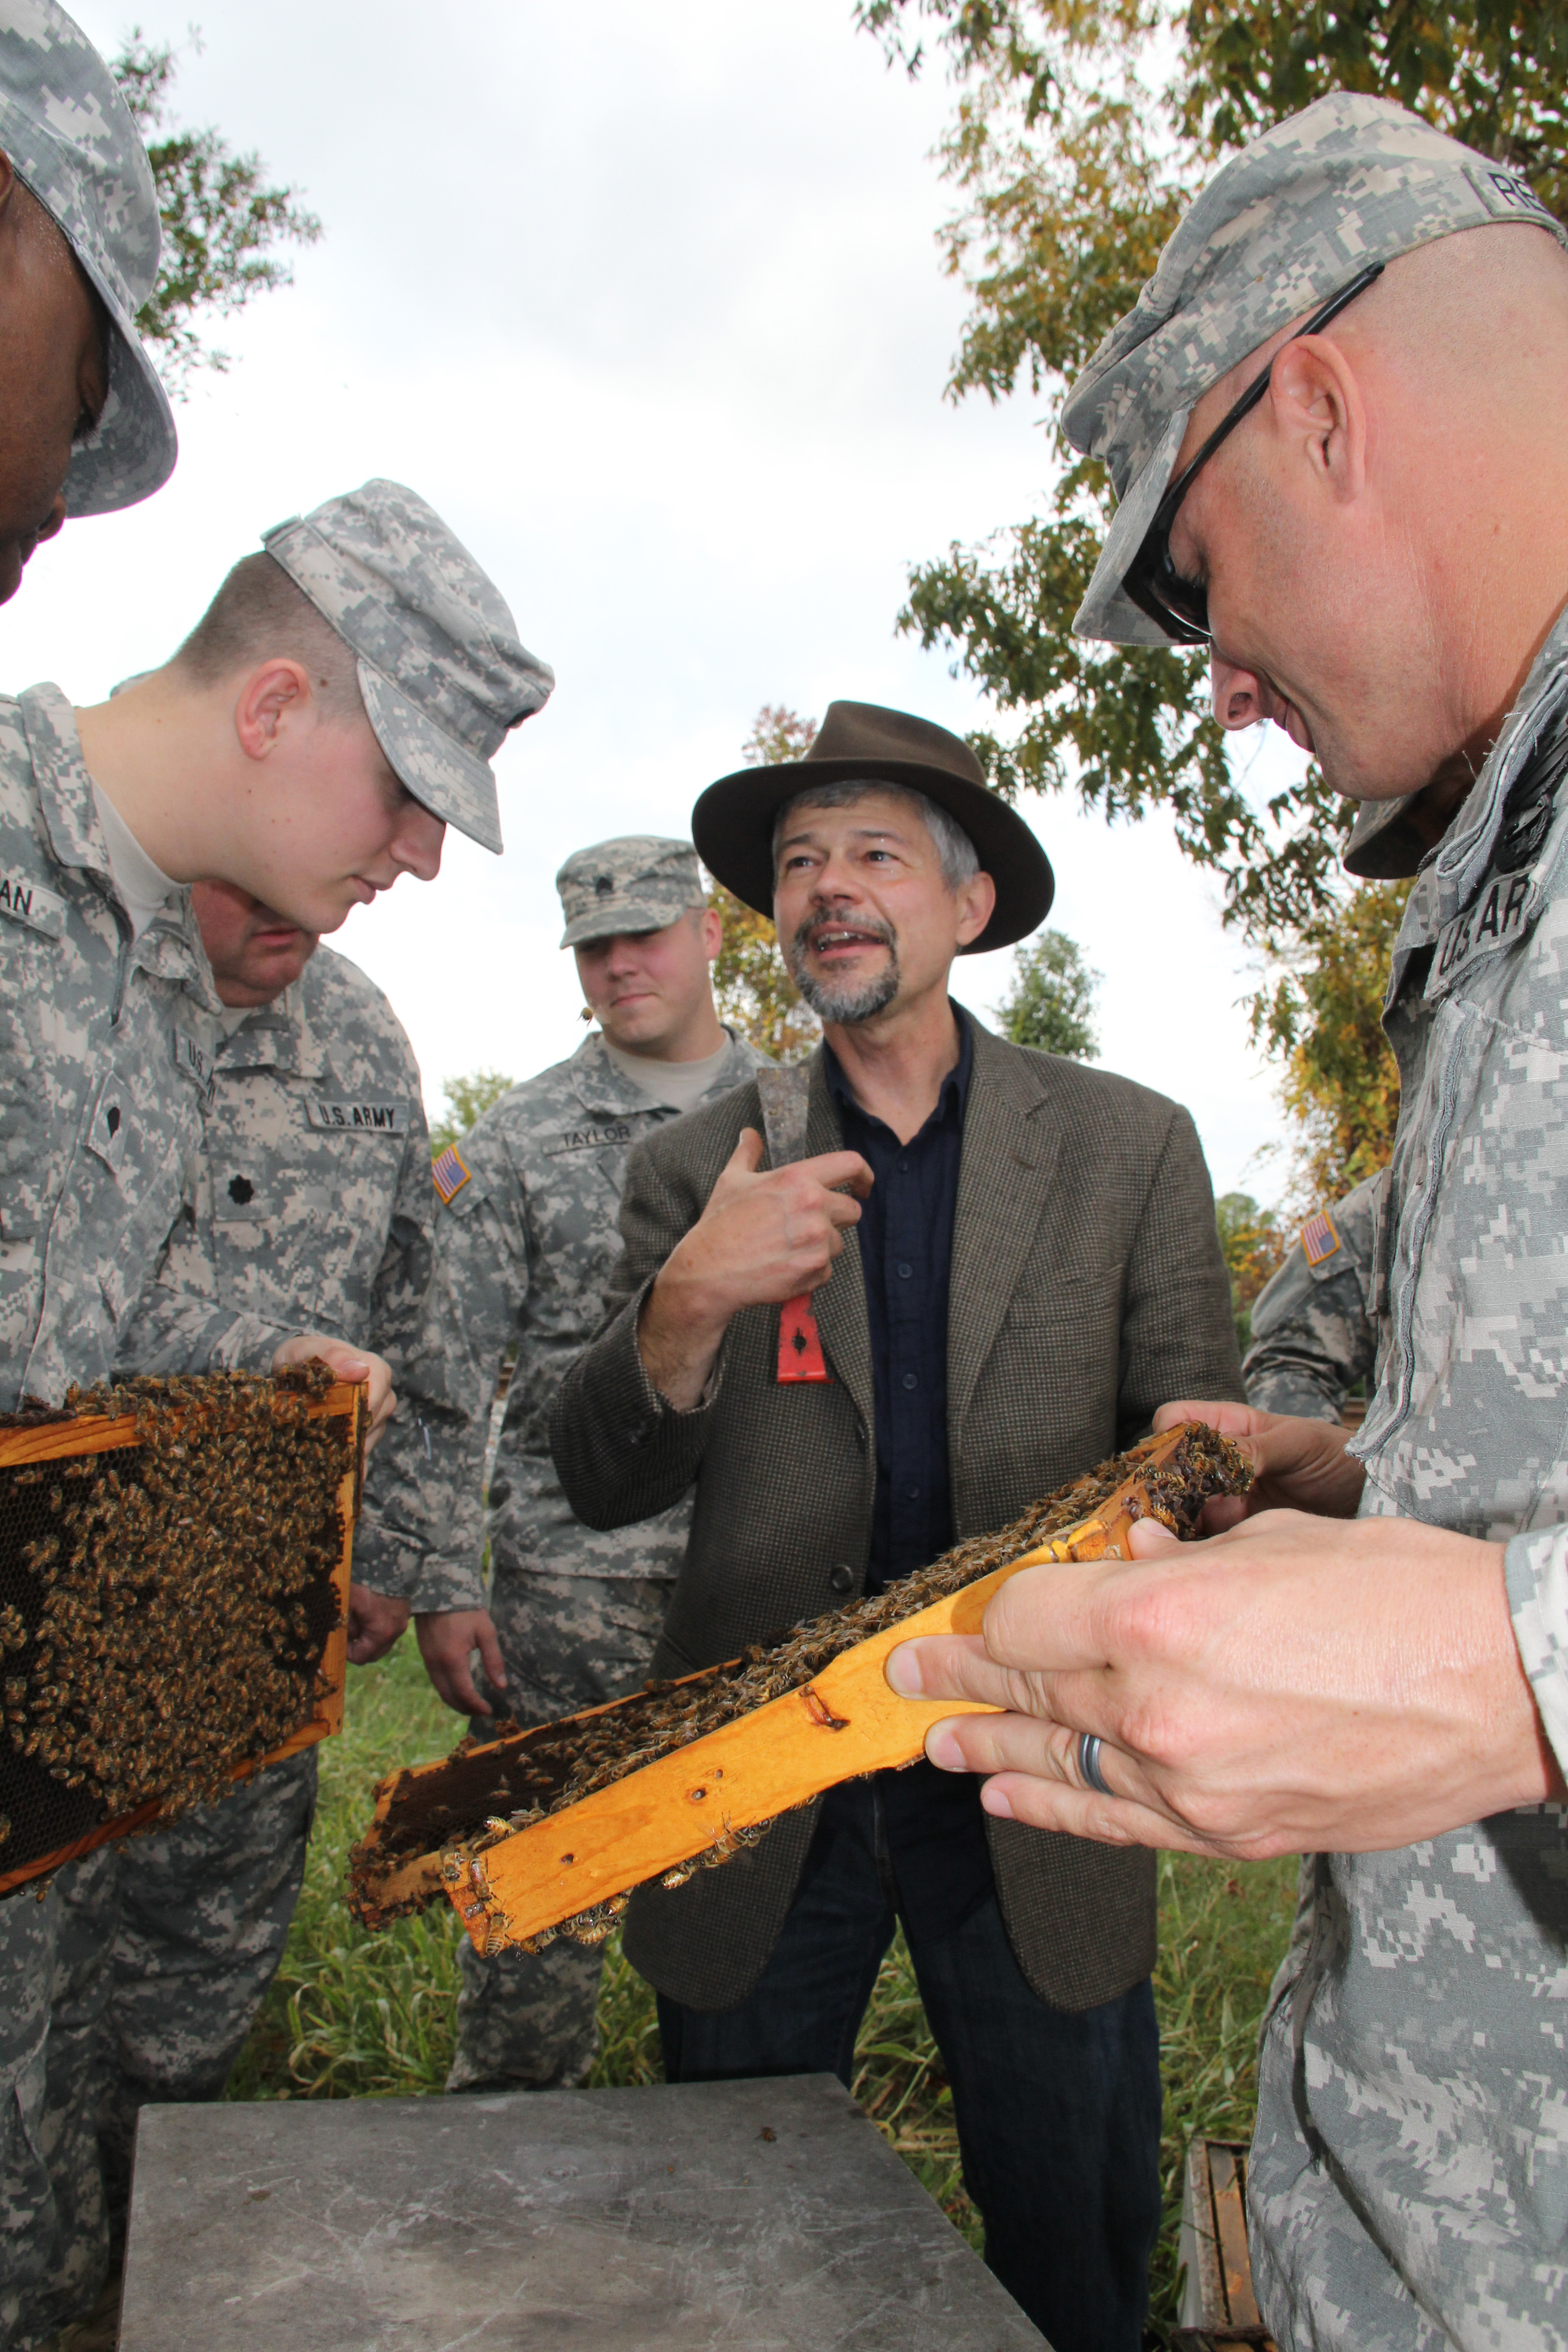 Keith Delaplane works with members of the Georgia National Guard to teach them how to care for beehives. Beekeeping is one program area the female members of the unit will be working in.